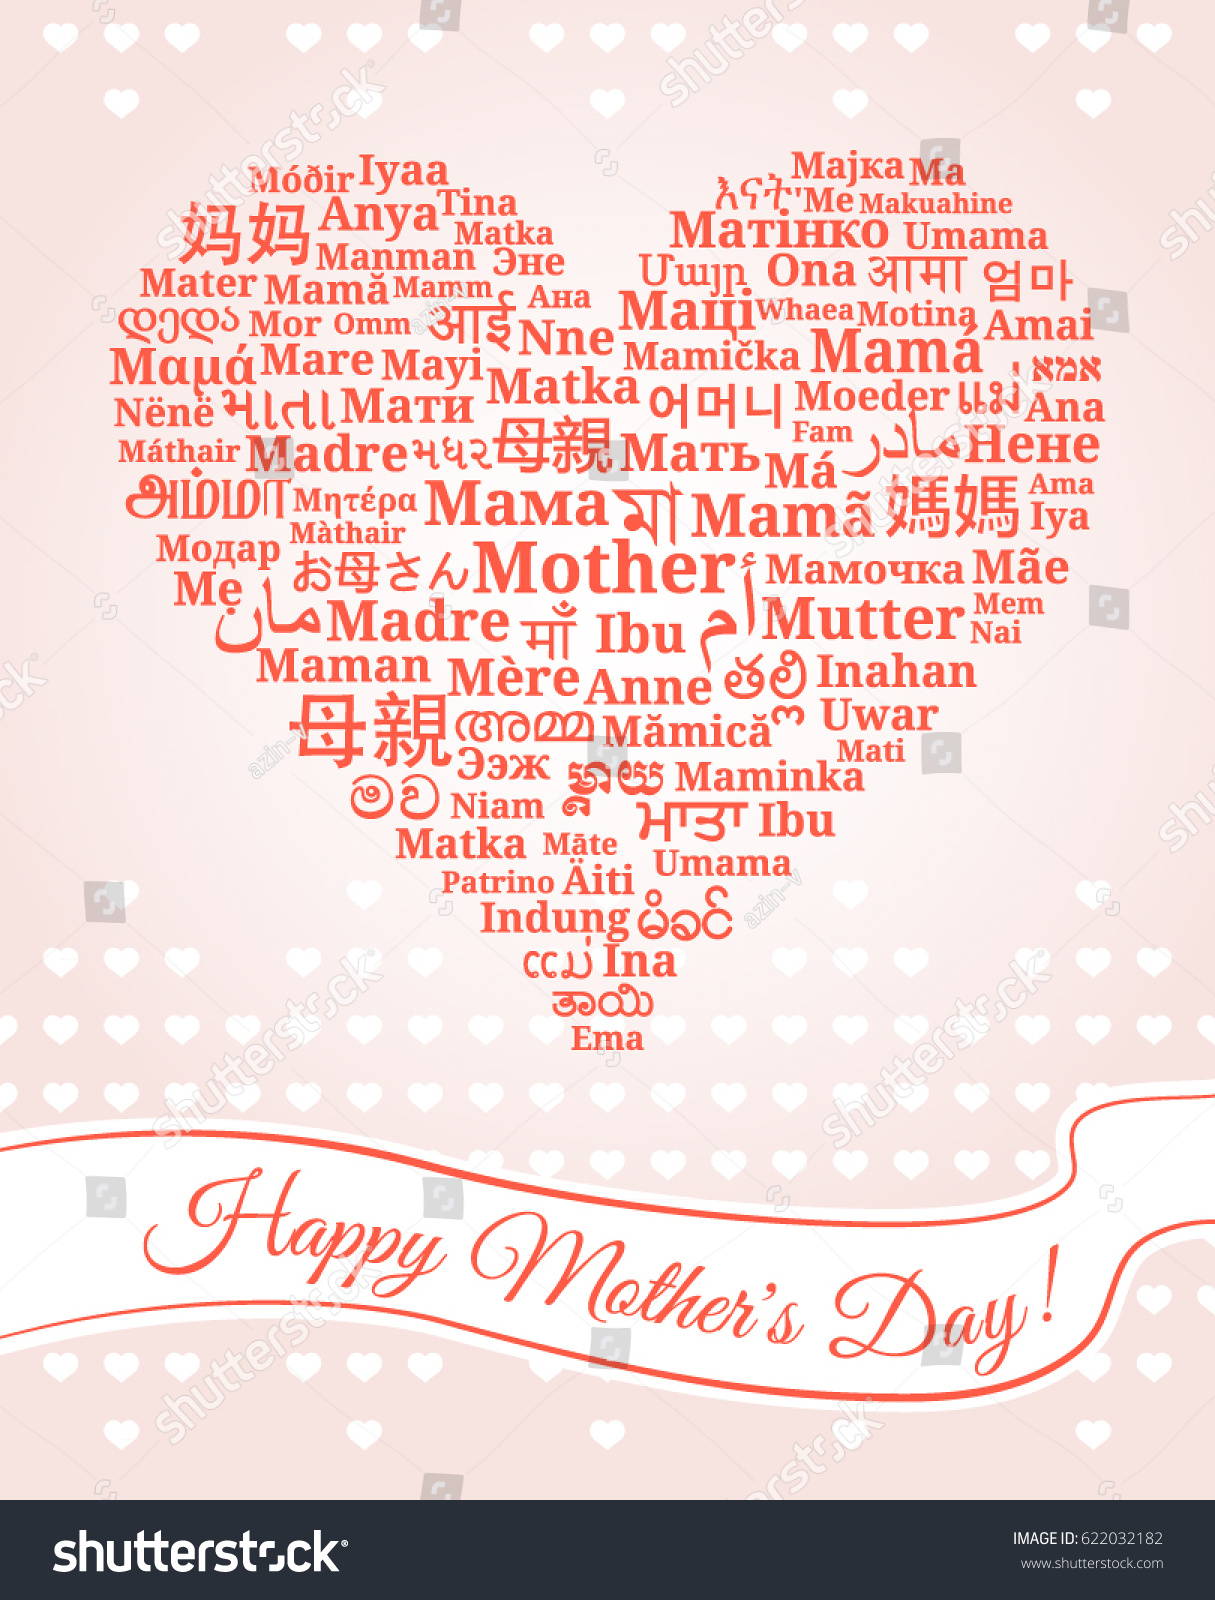 Greeting card happy mothers day heart stock vector 622032182 greeting card happy mothers day with a heart from the words mother kristyandbryce Gallery